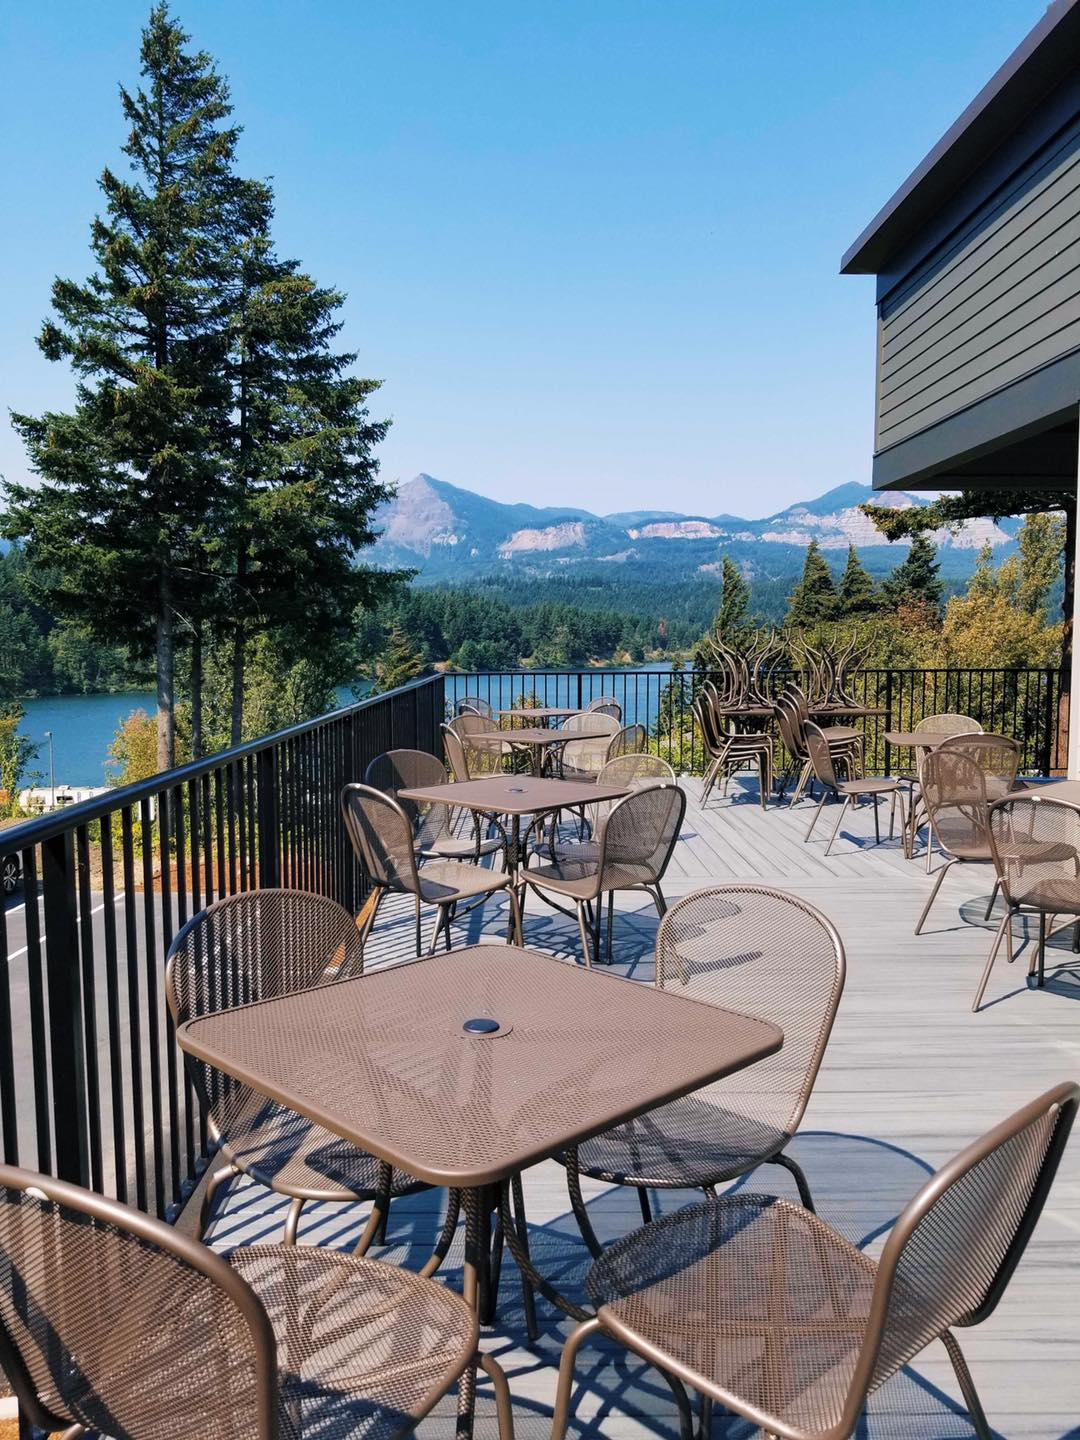 The new location of Thunder Island Brewing Co. offers views of the Columbia River and Cascade Mountains. (image courtesy of Thunder Island Brewing Co.